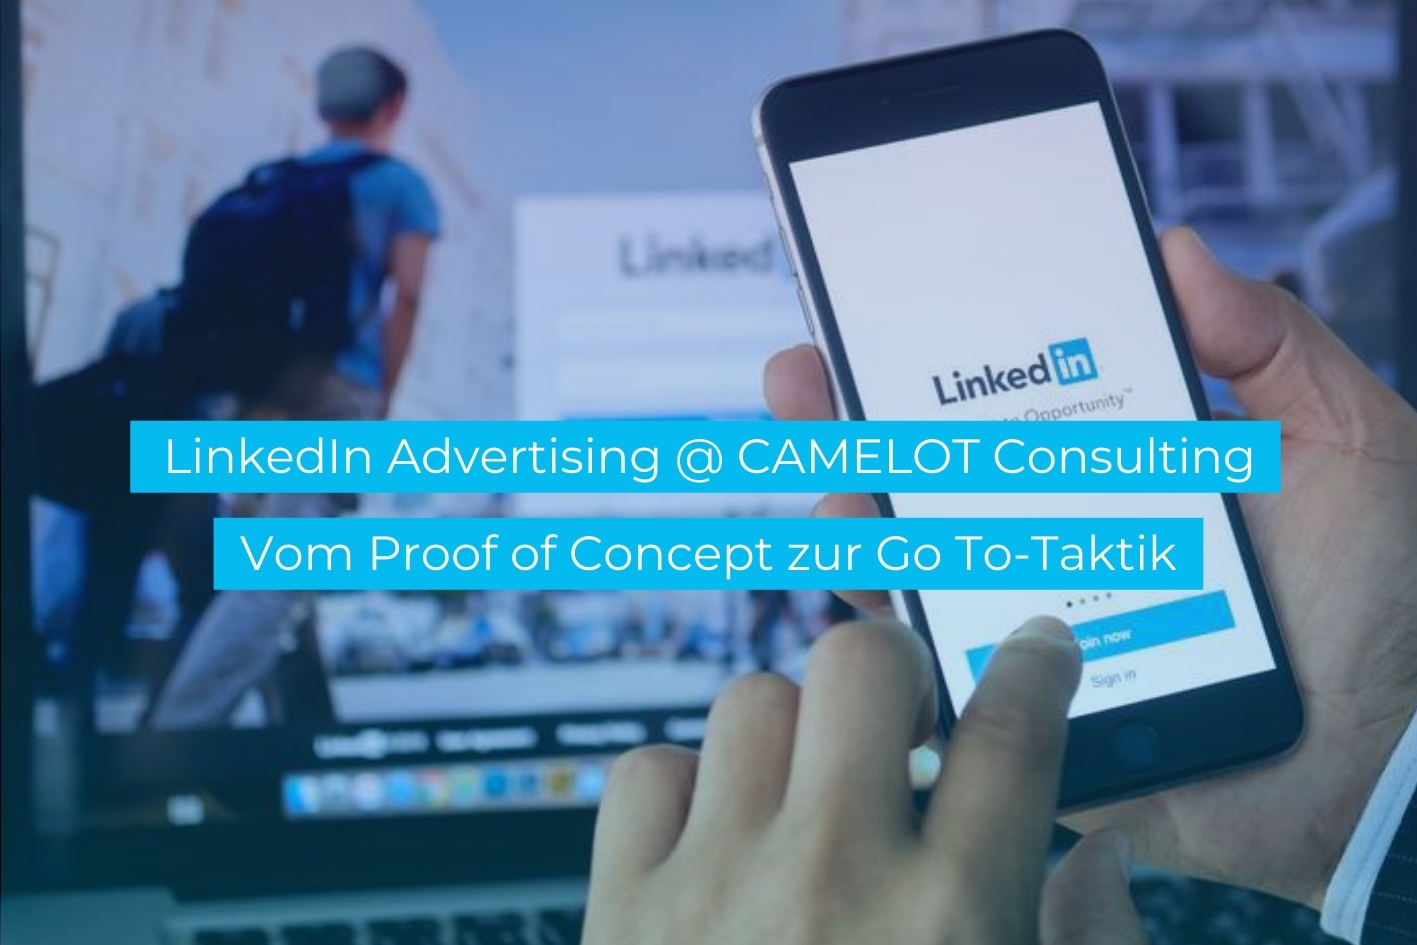 LinkedIn Advertising beim internationalen Beratungsunternehmen CAMELOT – vom Proof of Concept zur Go To-Taktik